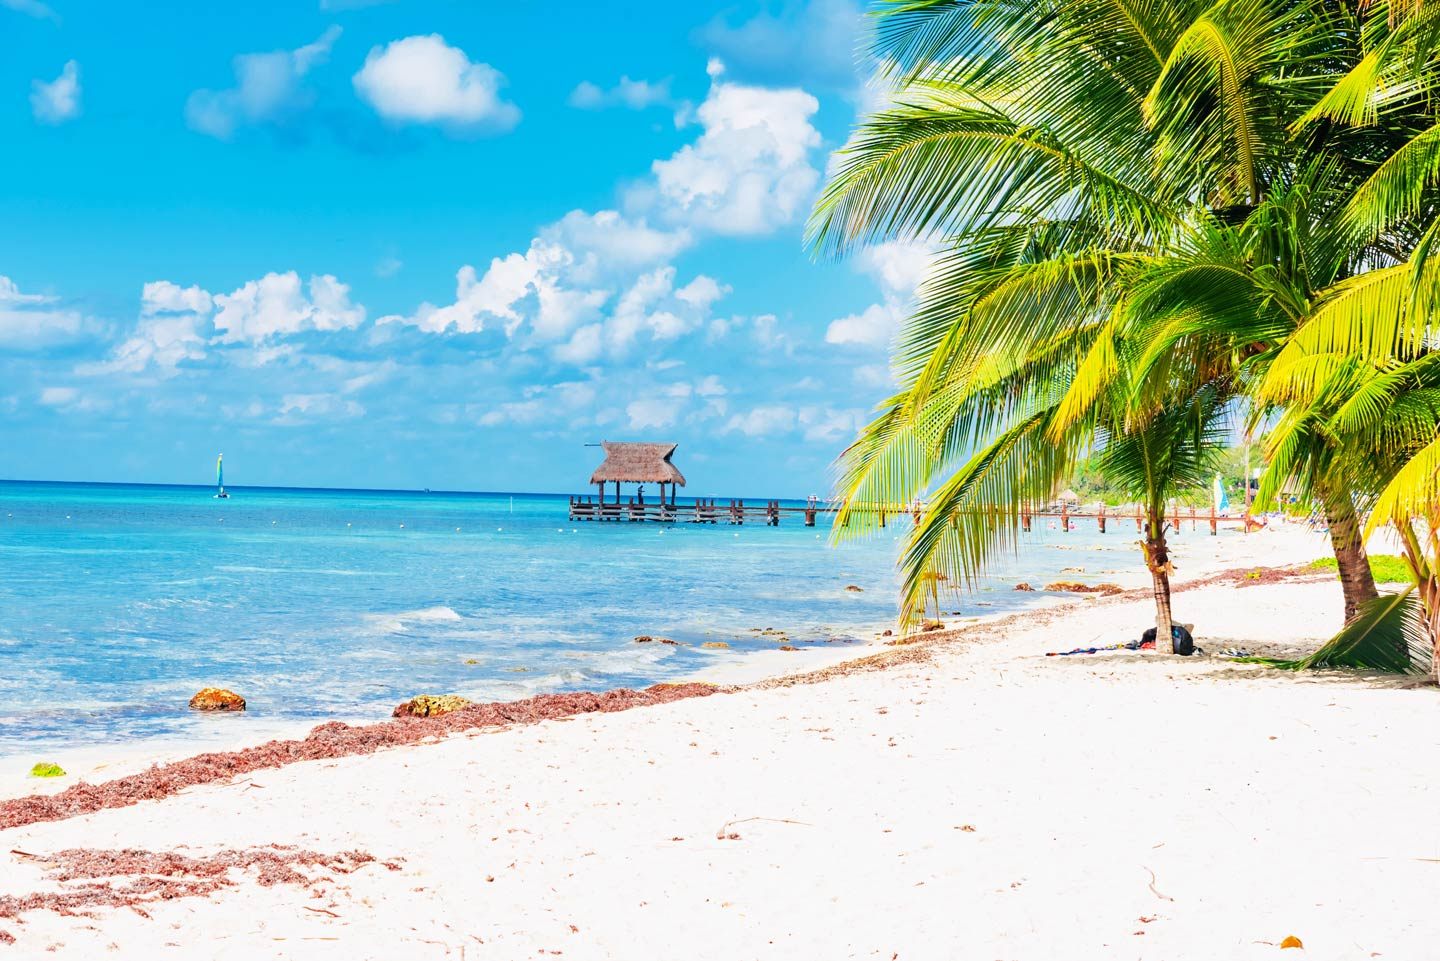 A view of the shoreline of one of Cozumel's beaches with white sands, the Caribbean, and palm trees, as well as a pier in the distance